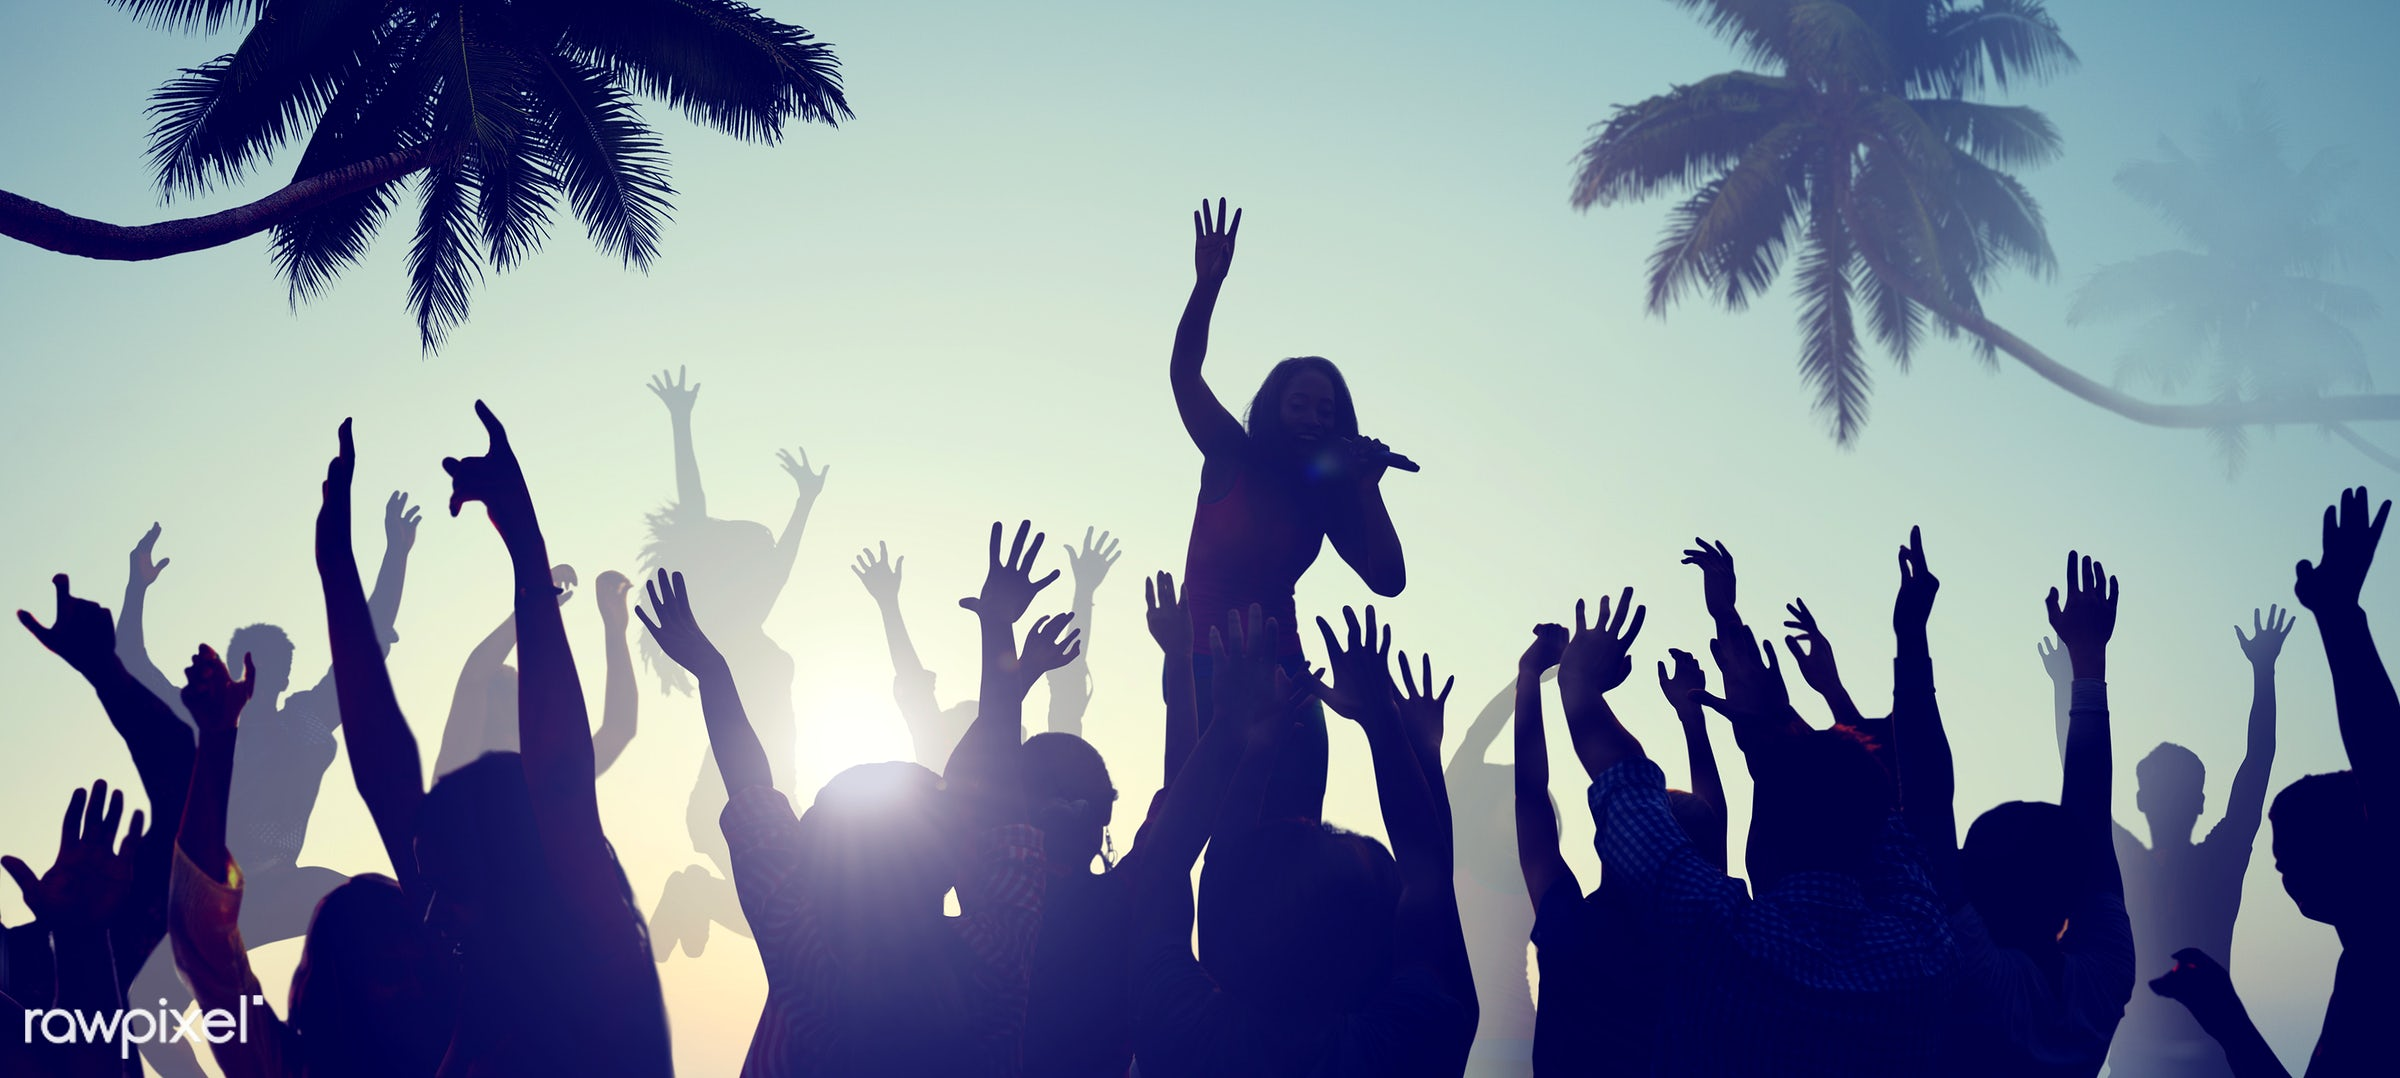 active, activity, adolescence, back lit, beach, beach party, carefree, celebration, cheerful, concert, dancing, ecstatic,...